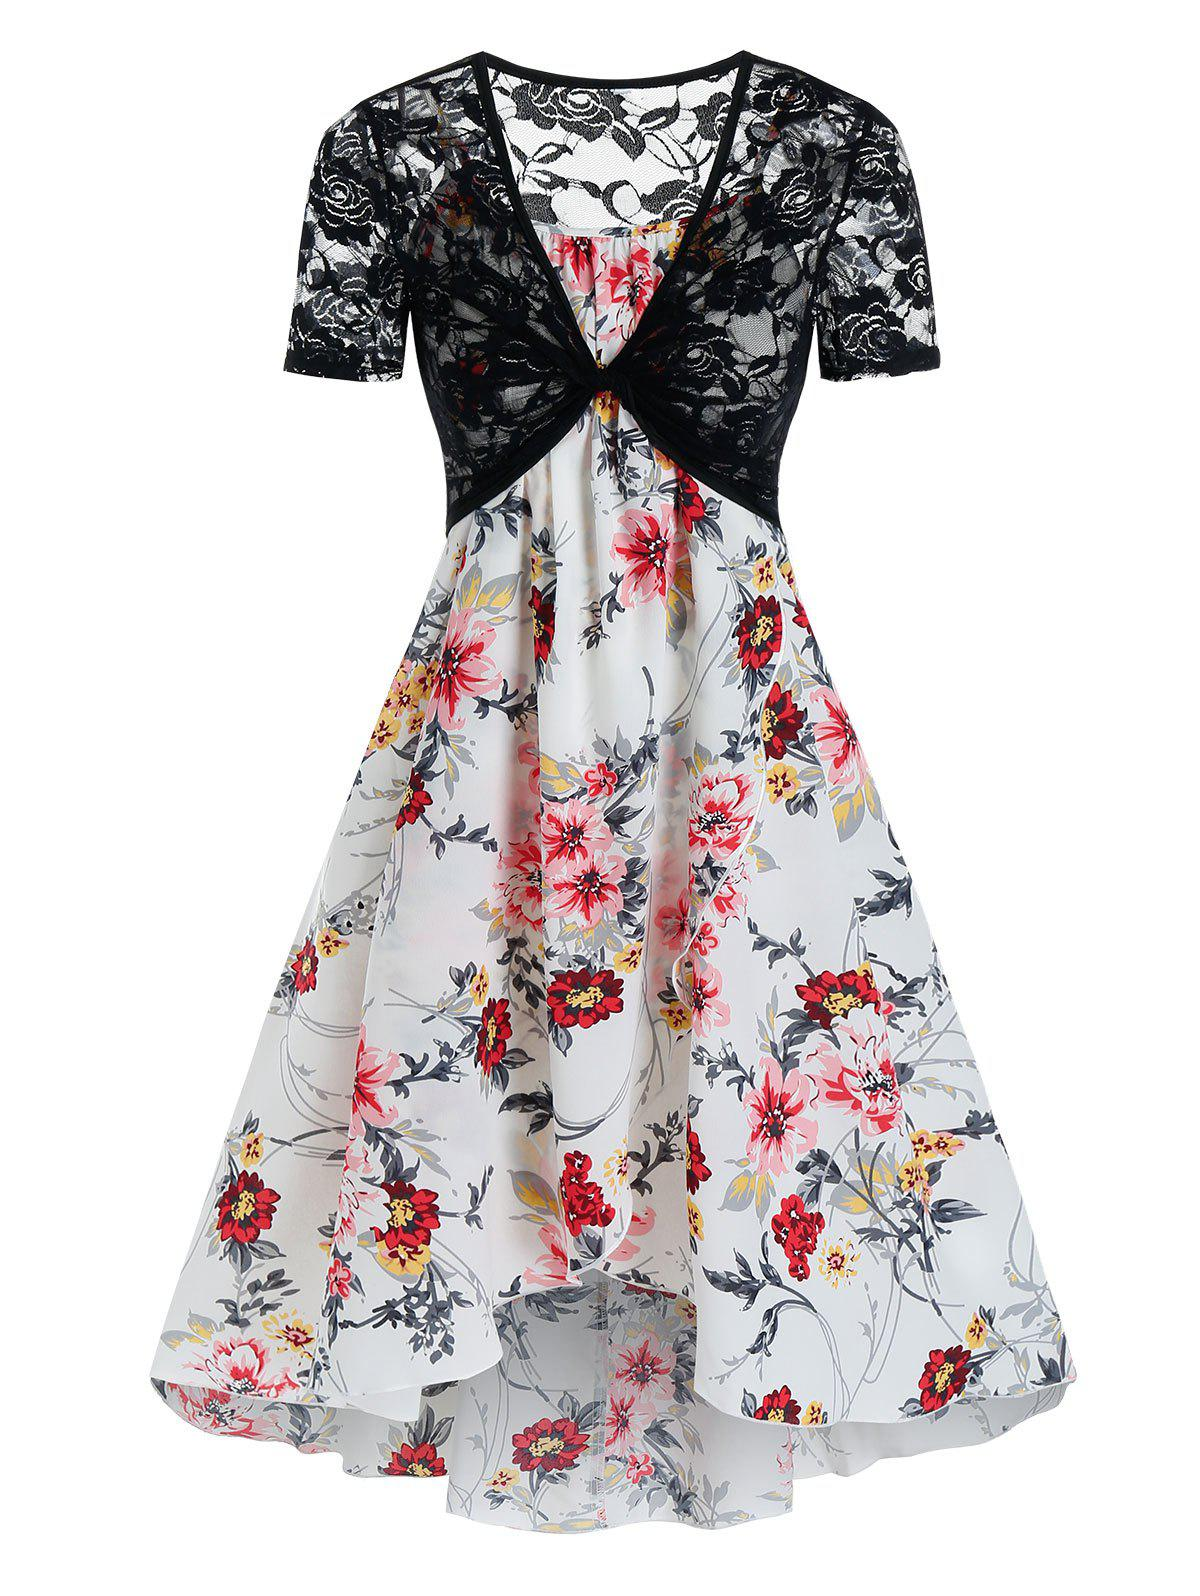 Affordable Floral Print Cami Tent Dress And Lace Crop Top Sets